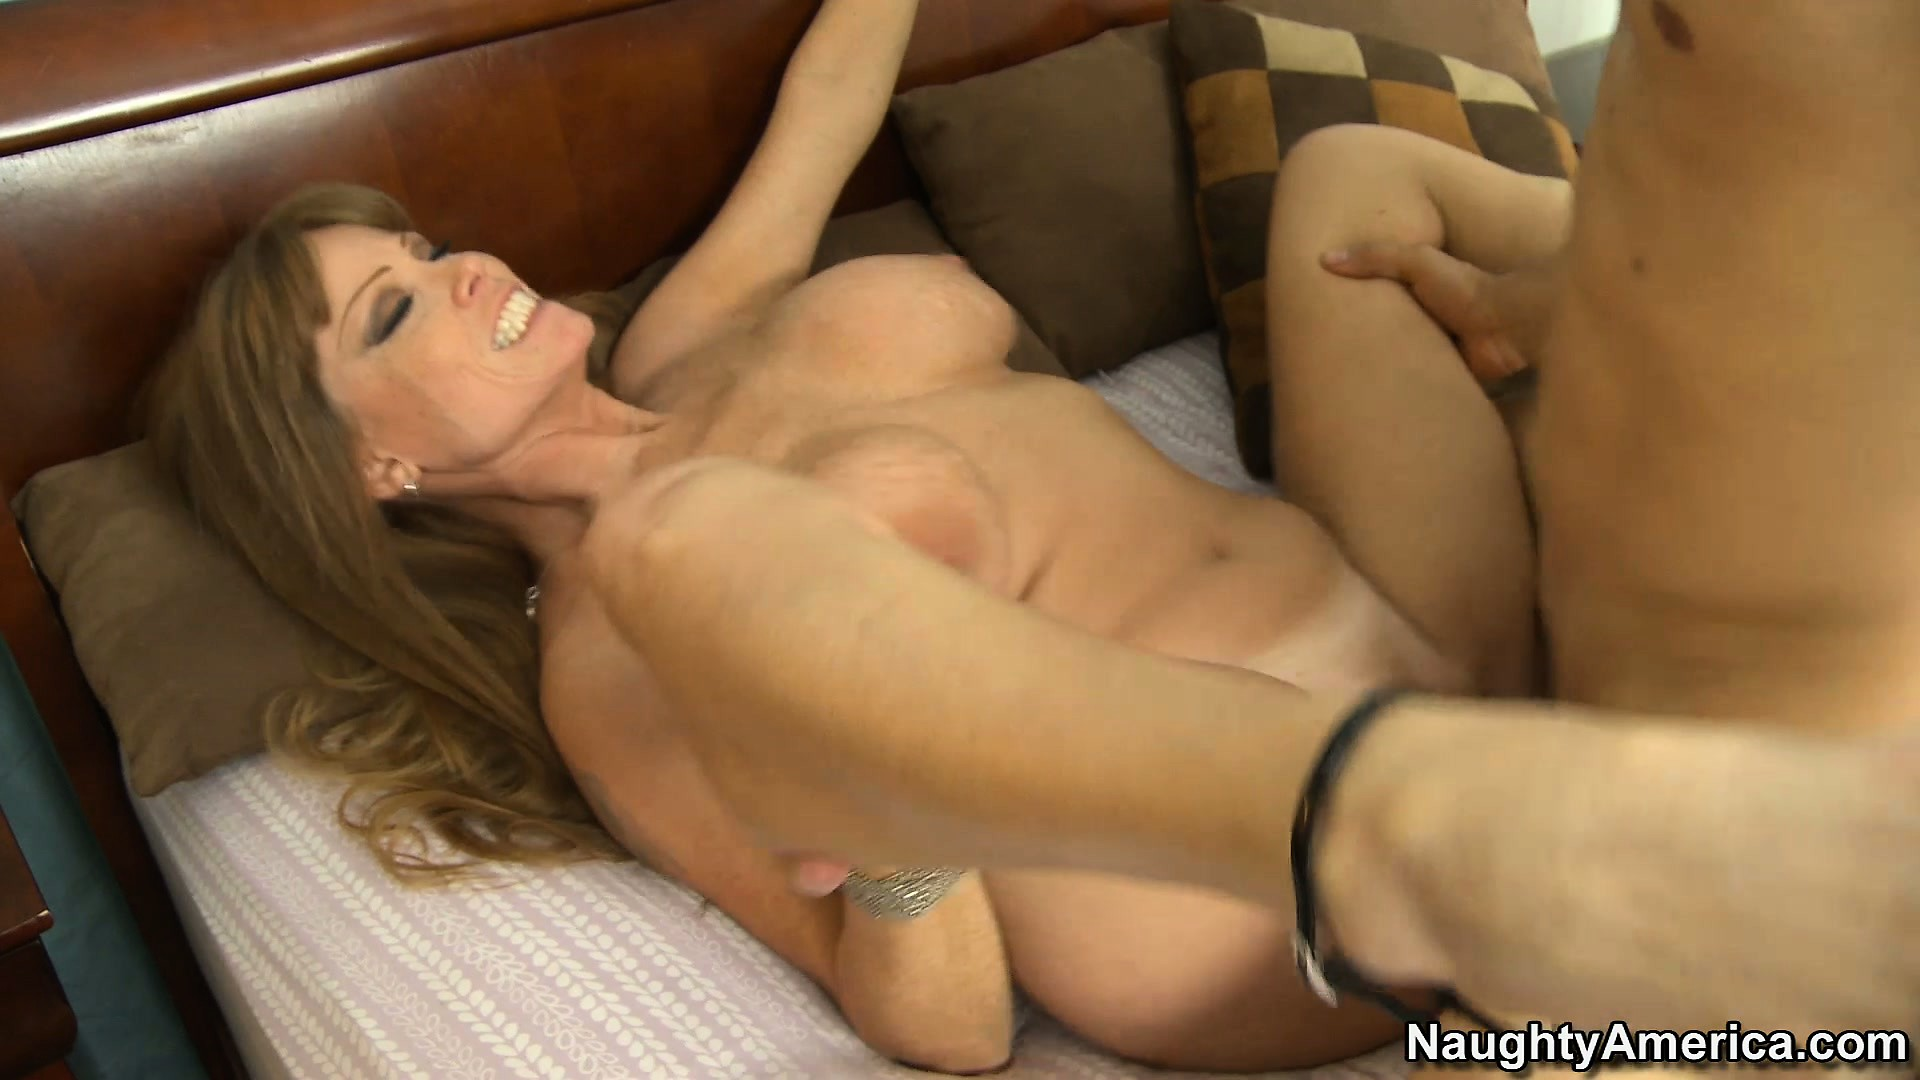 Porn Tube of Nasty Mom Darla Crane Gets A Tongue Dance On Her Vagina Then He Bangs Her